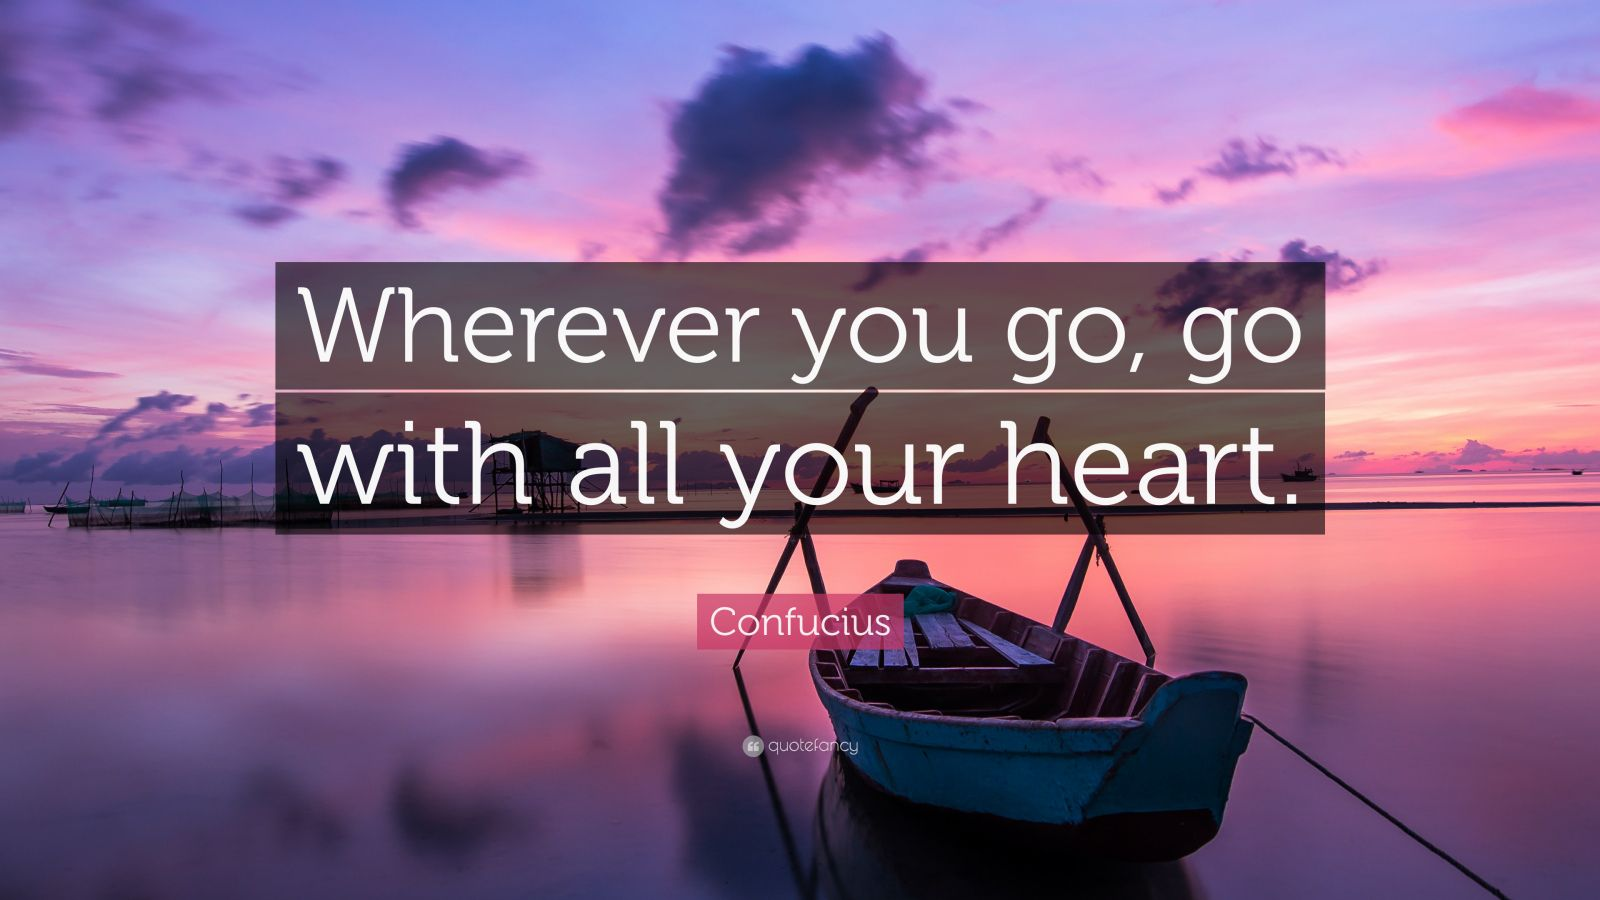 Steve Jobs Motivational Quotes Wallpaper Confucius Quote Wherever You Go Go With All Your Heart